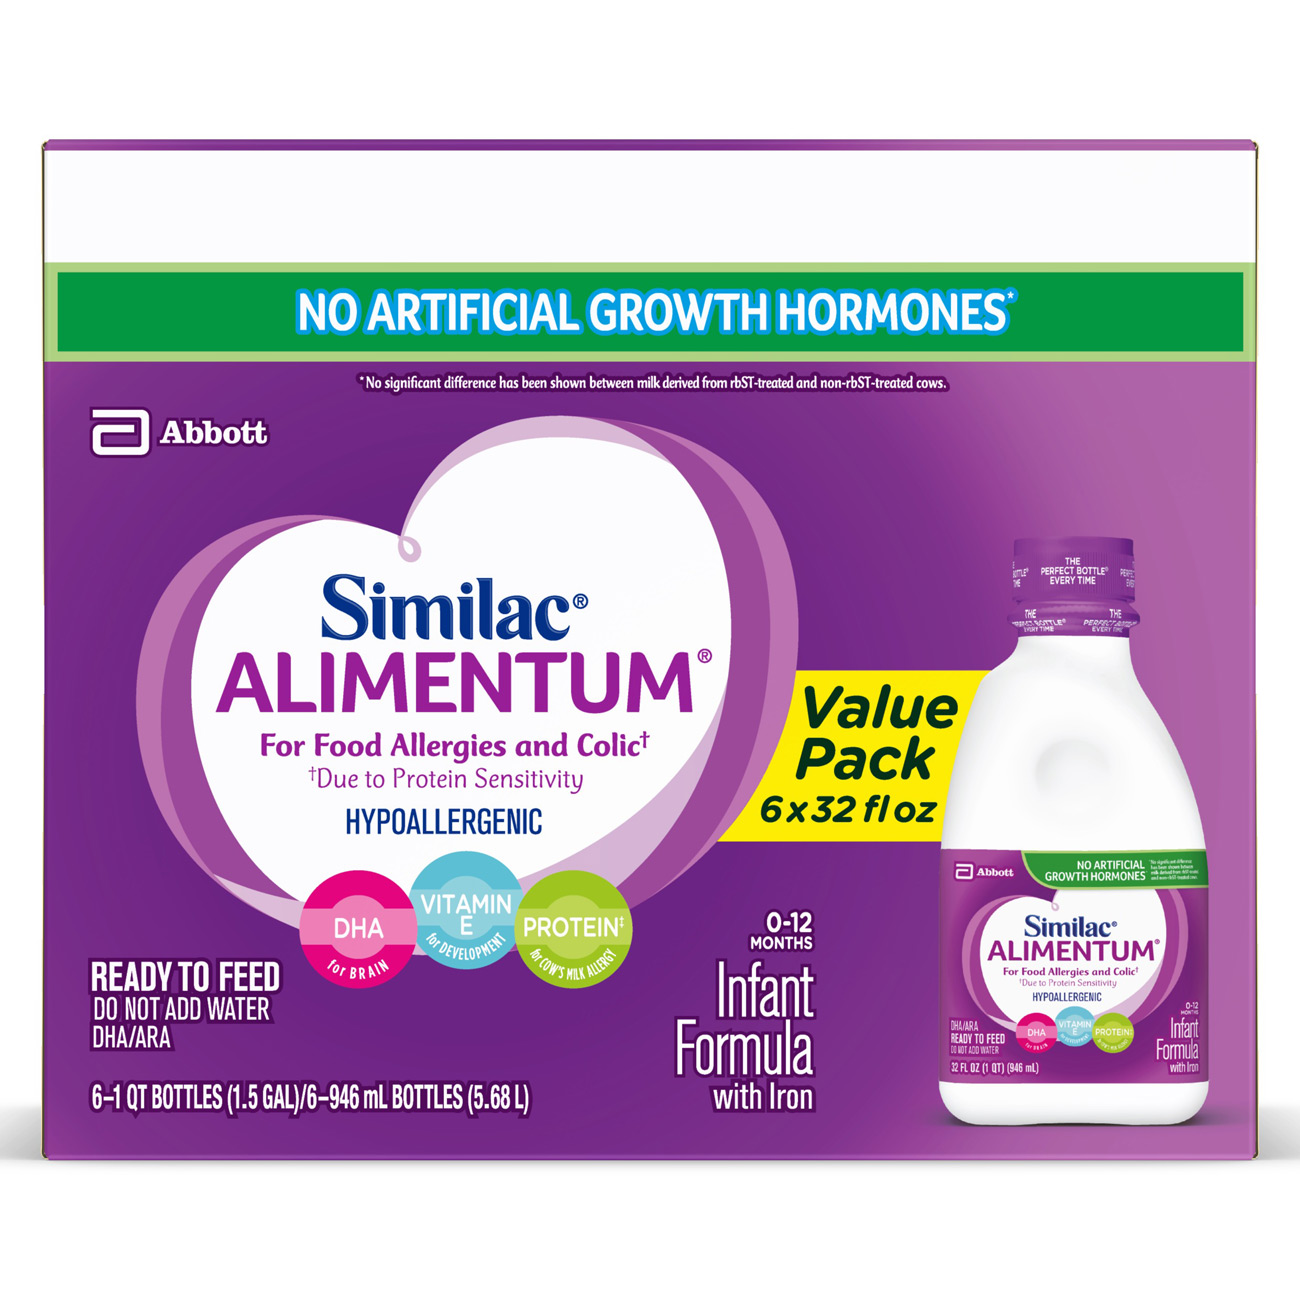 Similac Alimentum Hypoallergenic Infant Formula for Food Allergies and Colic, Baby Formula, Ready to Feed, 1 qt (Pack of 6)